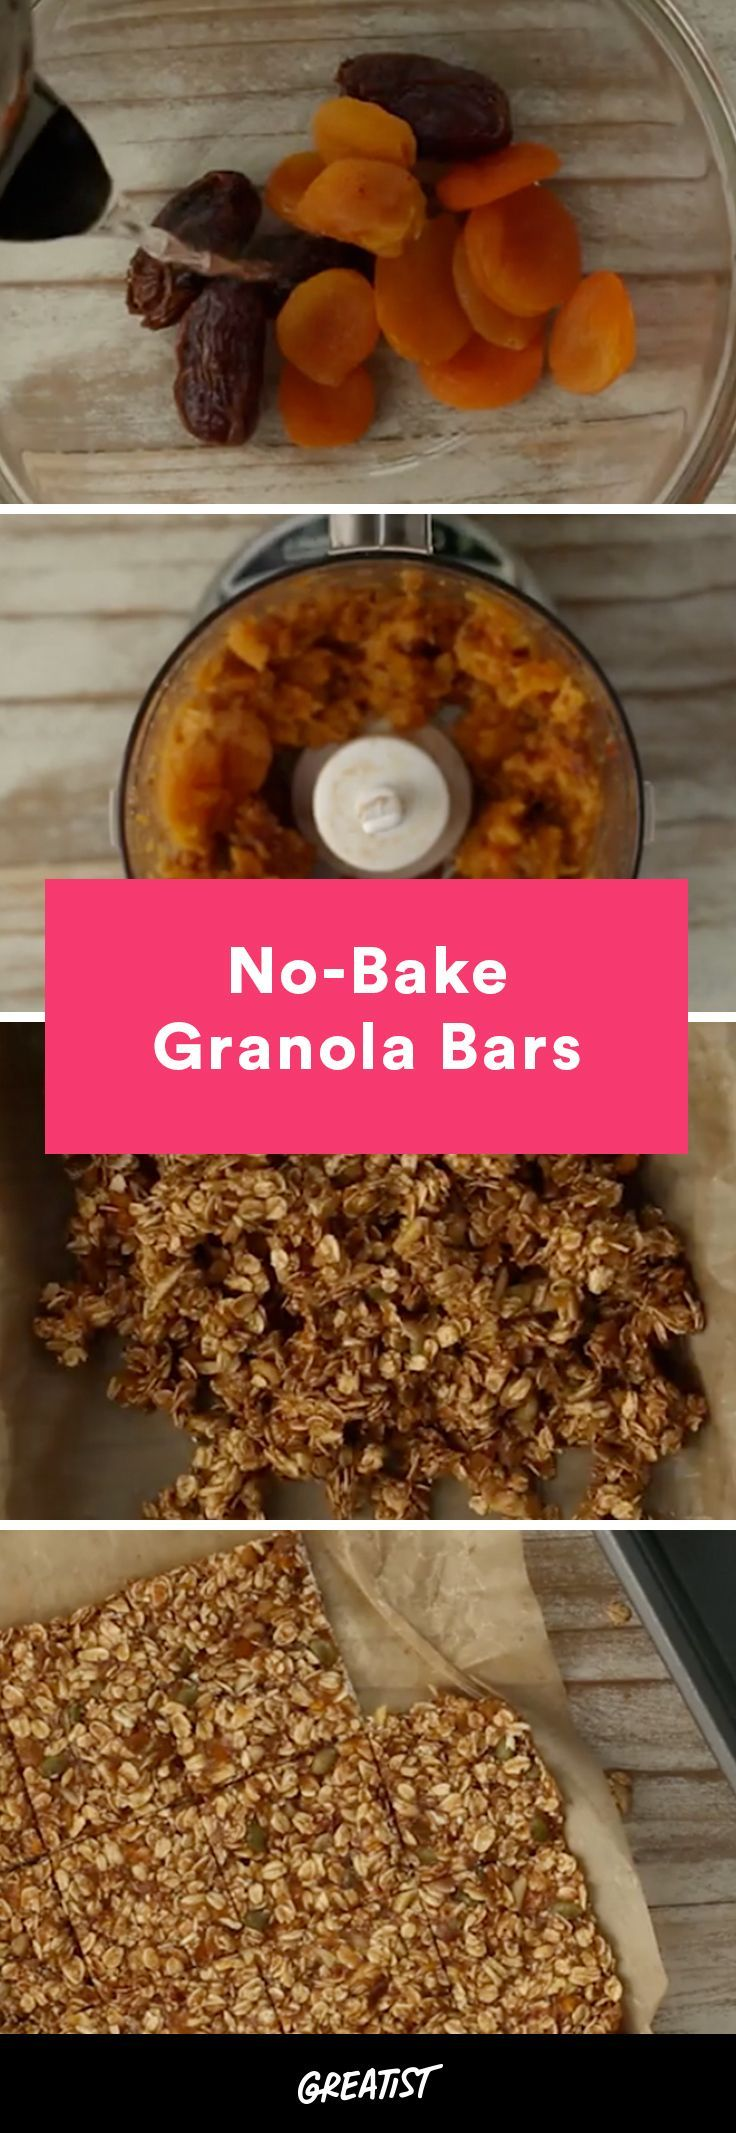 Never buy the packaged kind again. #homemade #granola #bars http://greatist.com/eat/homemade-no-bake-granola-bars-recipe-video